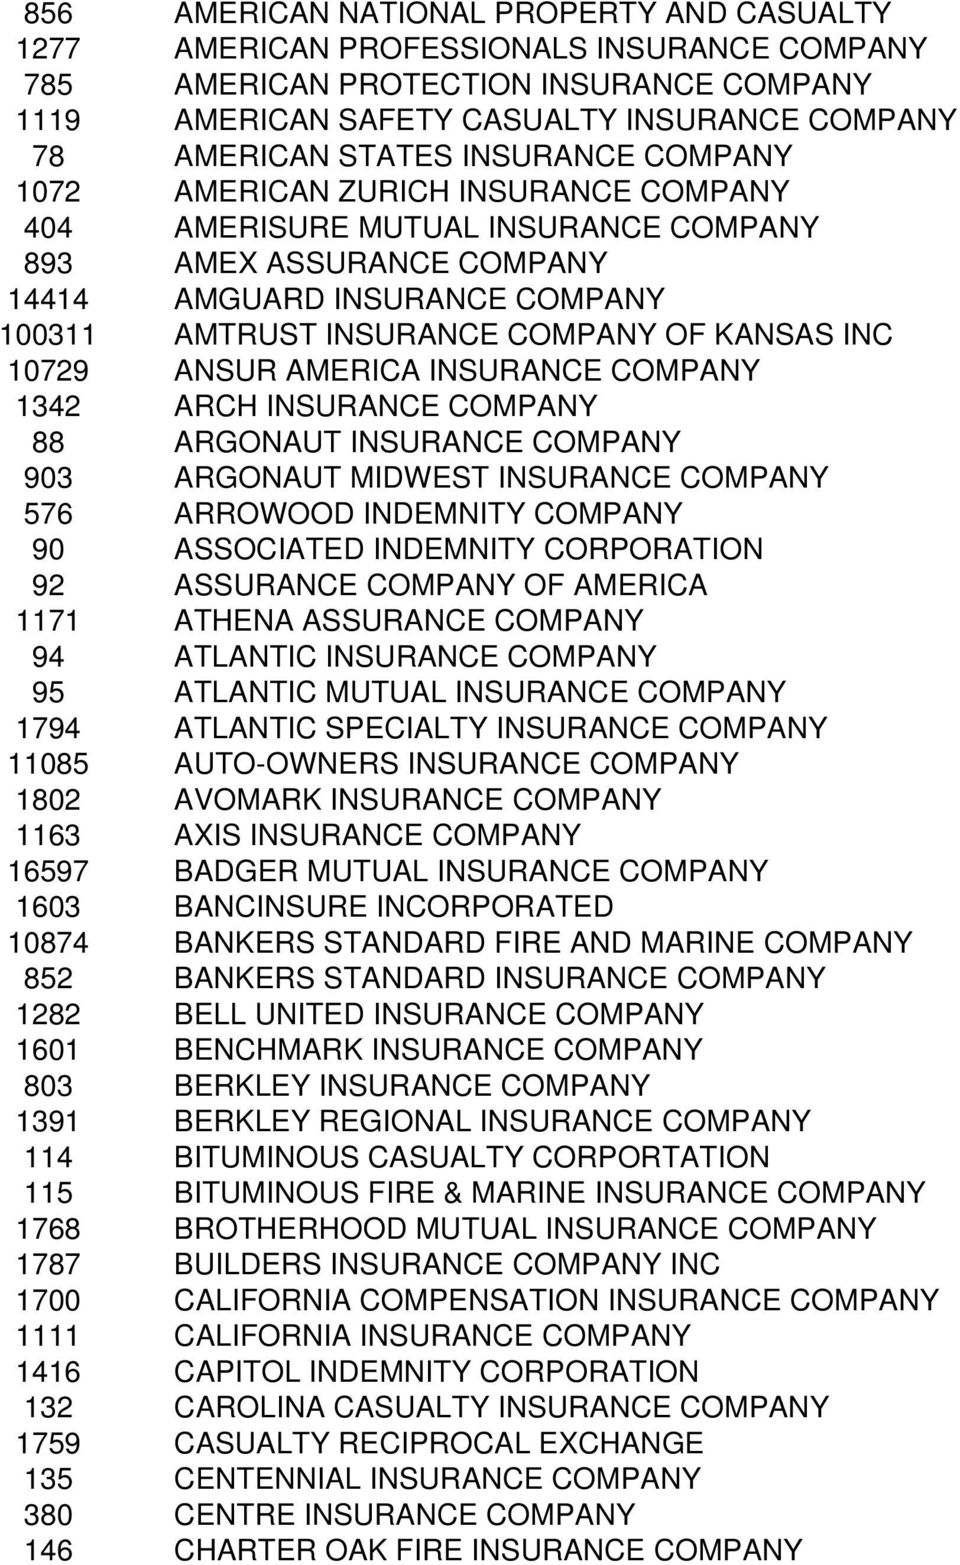 INC 10729 ANSUR AMERICA INSURANCE COMPANY 1342 ARCH INSURANCE COMPANY 88 ARGONAUT INSURANCE COMPANY 903 ARGONAUT MIDWEST INSURANCE COMPANY 576 ARROWOOD INDEMNITY COMPANY 90 ASSOCIATED INDEMNITY